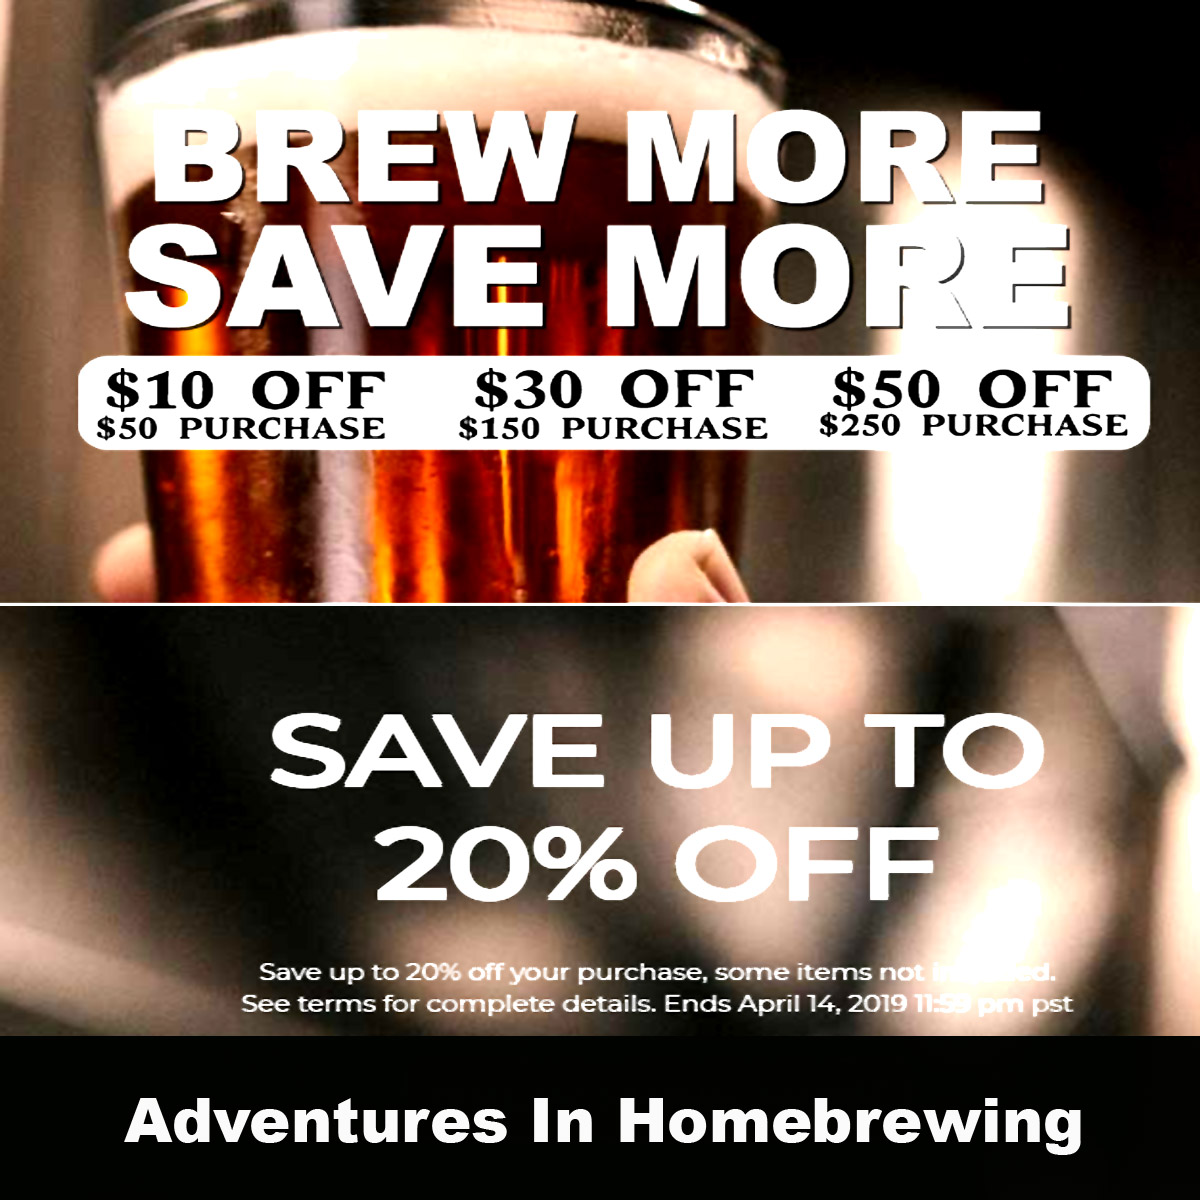 Home Wine Making Coupon Codes for Save Up To $50 Off Your Purchase at Homebrewing.org.  No promo code required.  Click Link Coupon Code